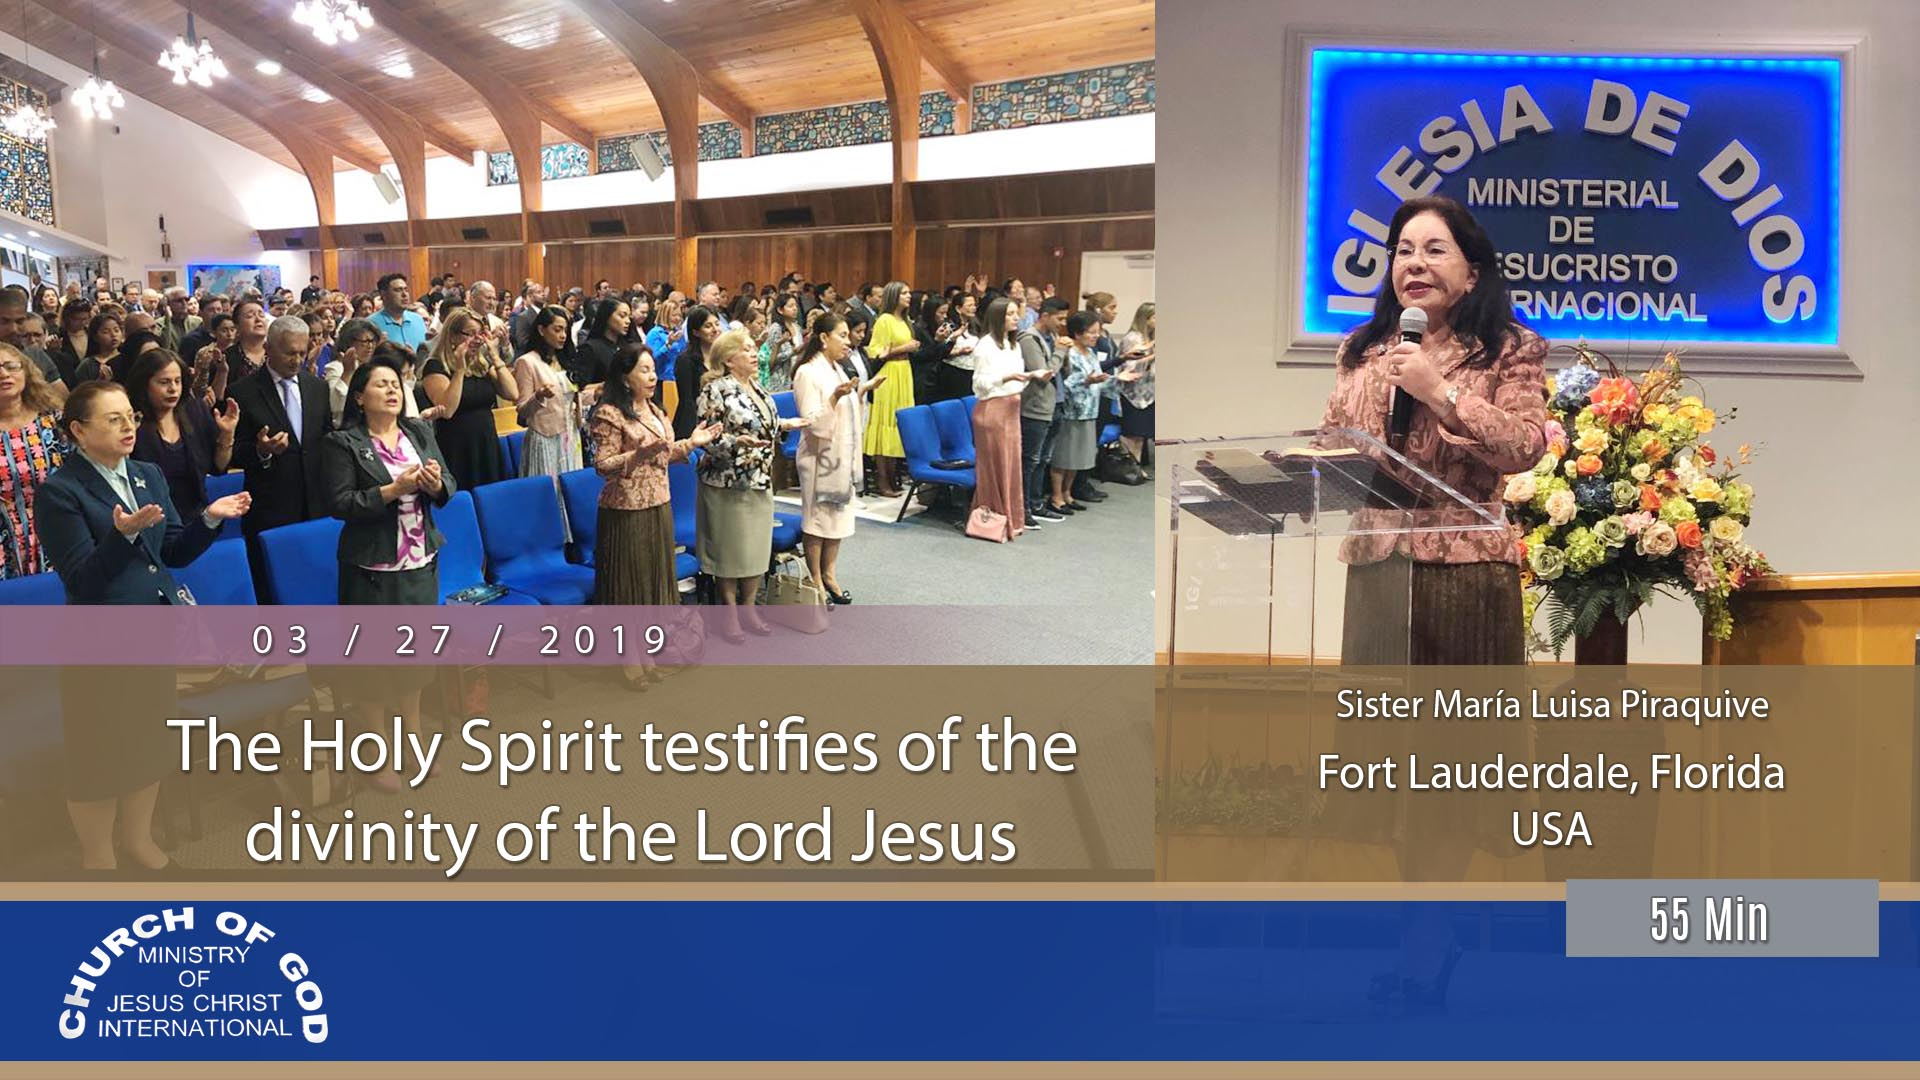 Teaching: The Holy Spirit Testifies of the Divinity of the Lord Jesus – Sister Maria Luisa